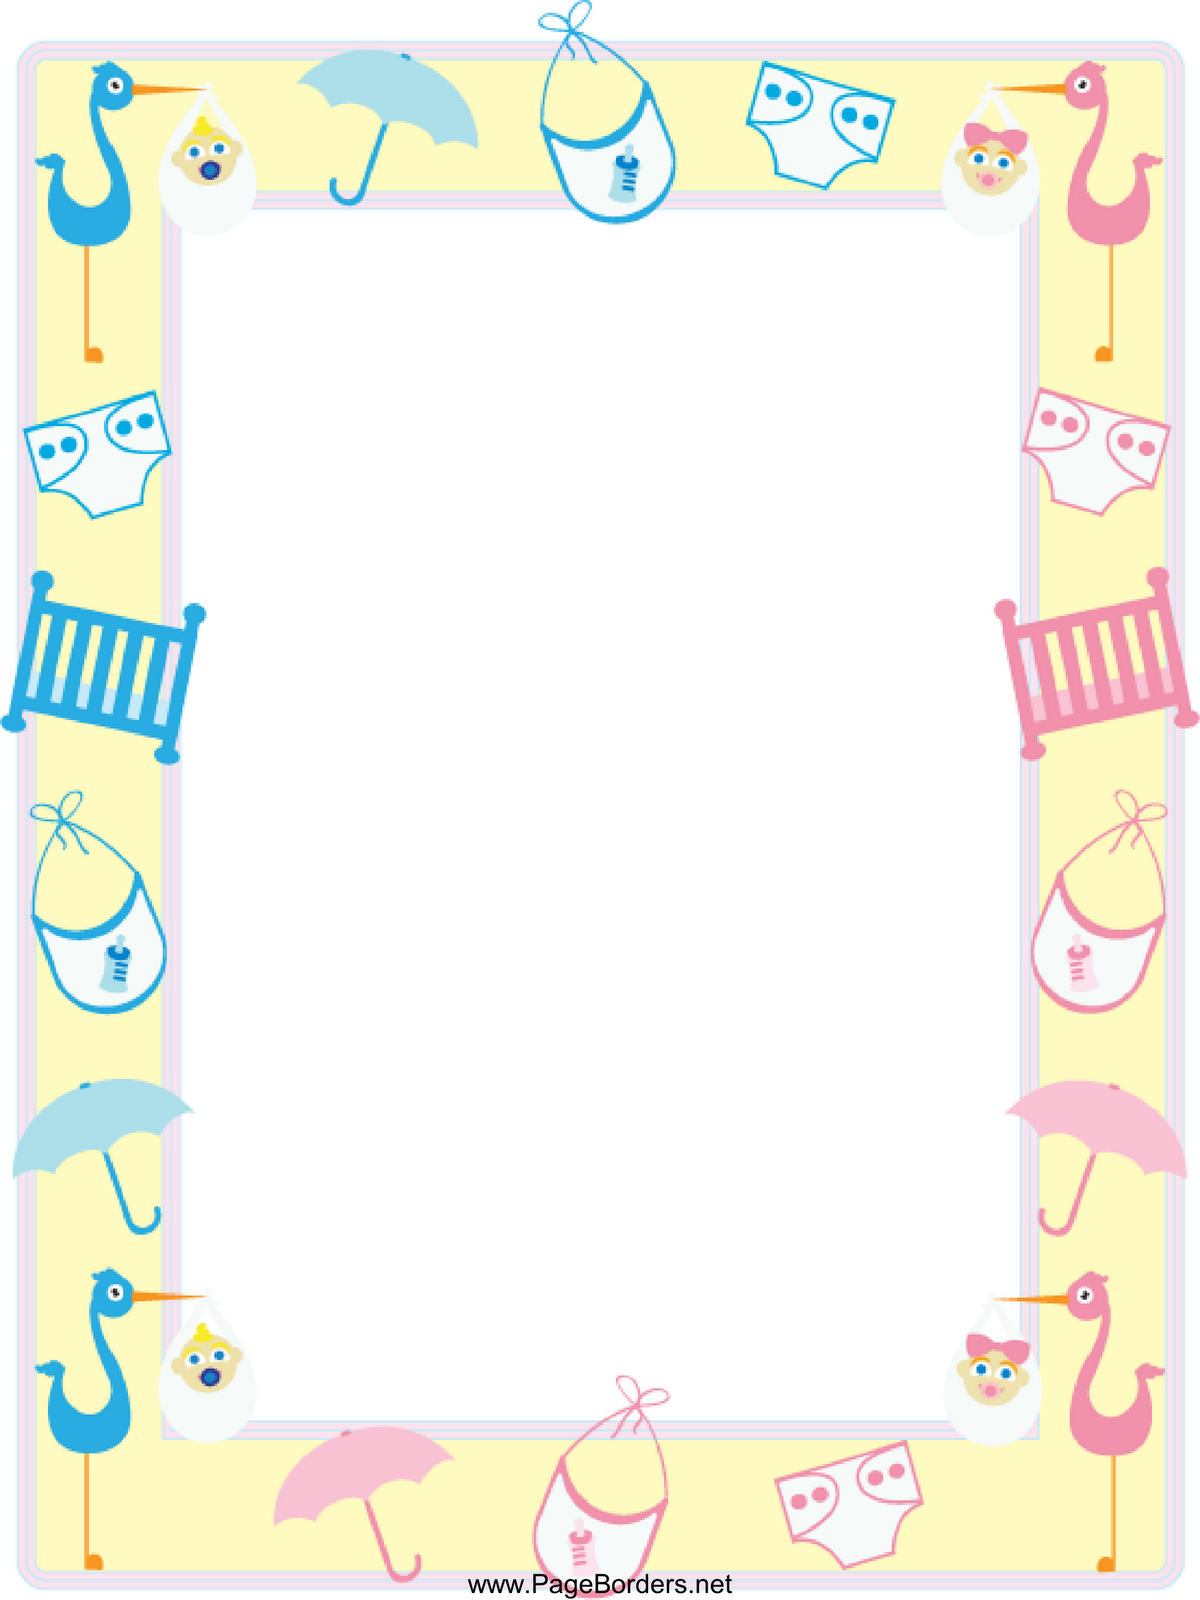 Free Baby Border Free, Download Free Clip Art, Free Clip Art On - Free Printable Baby Borders For Paper